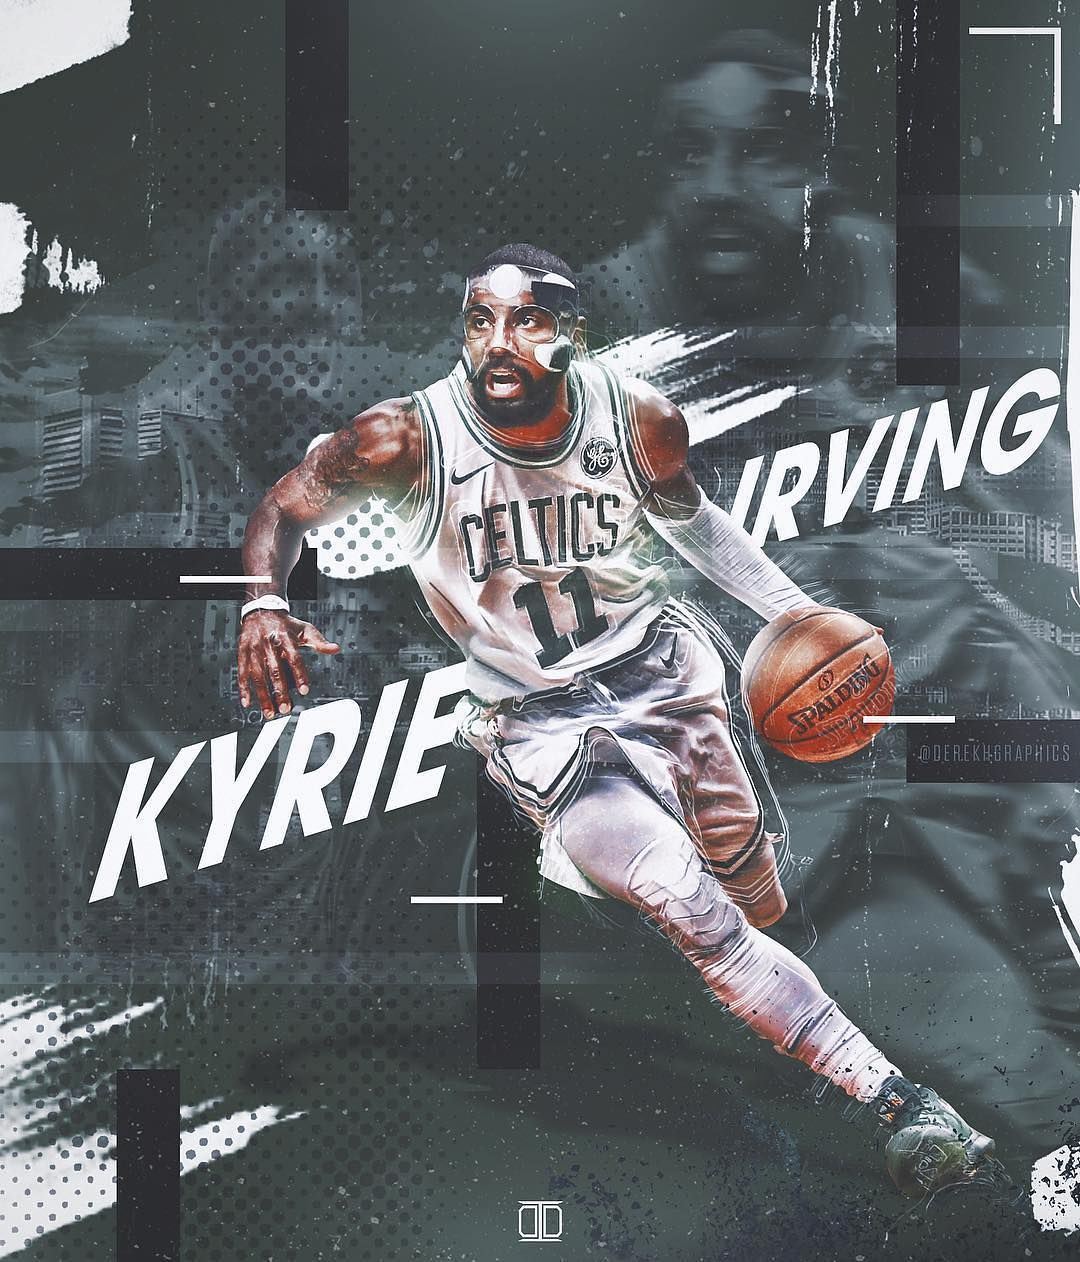 Kyrie Irving Wallpaper: Pin By JETRO VILLONES On Basketball